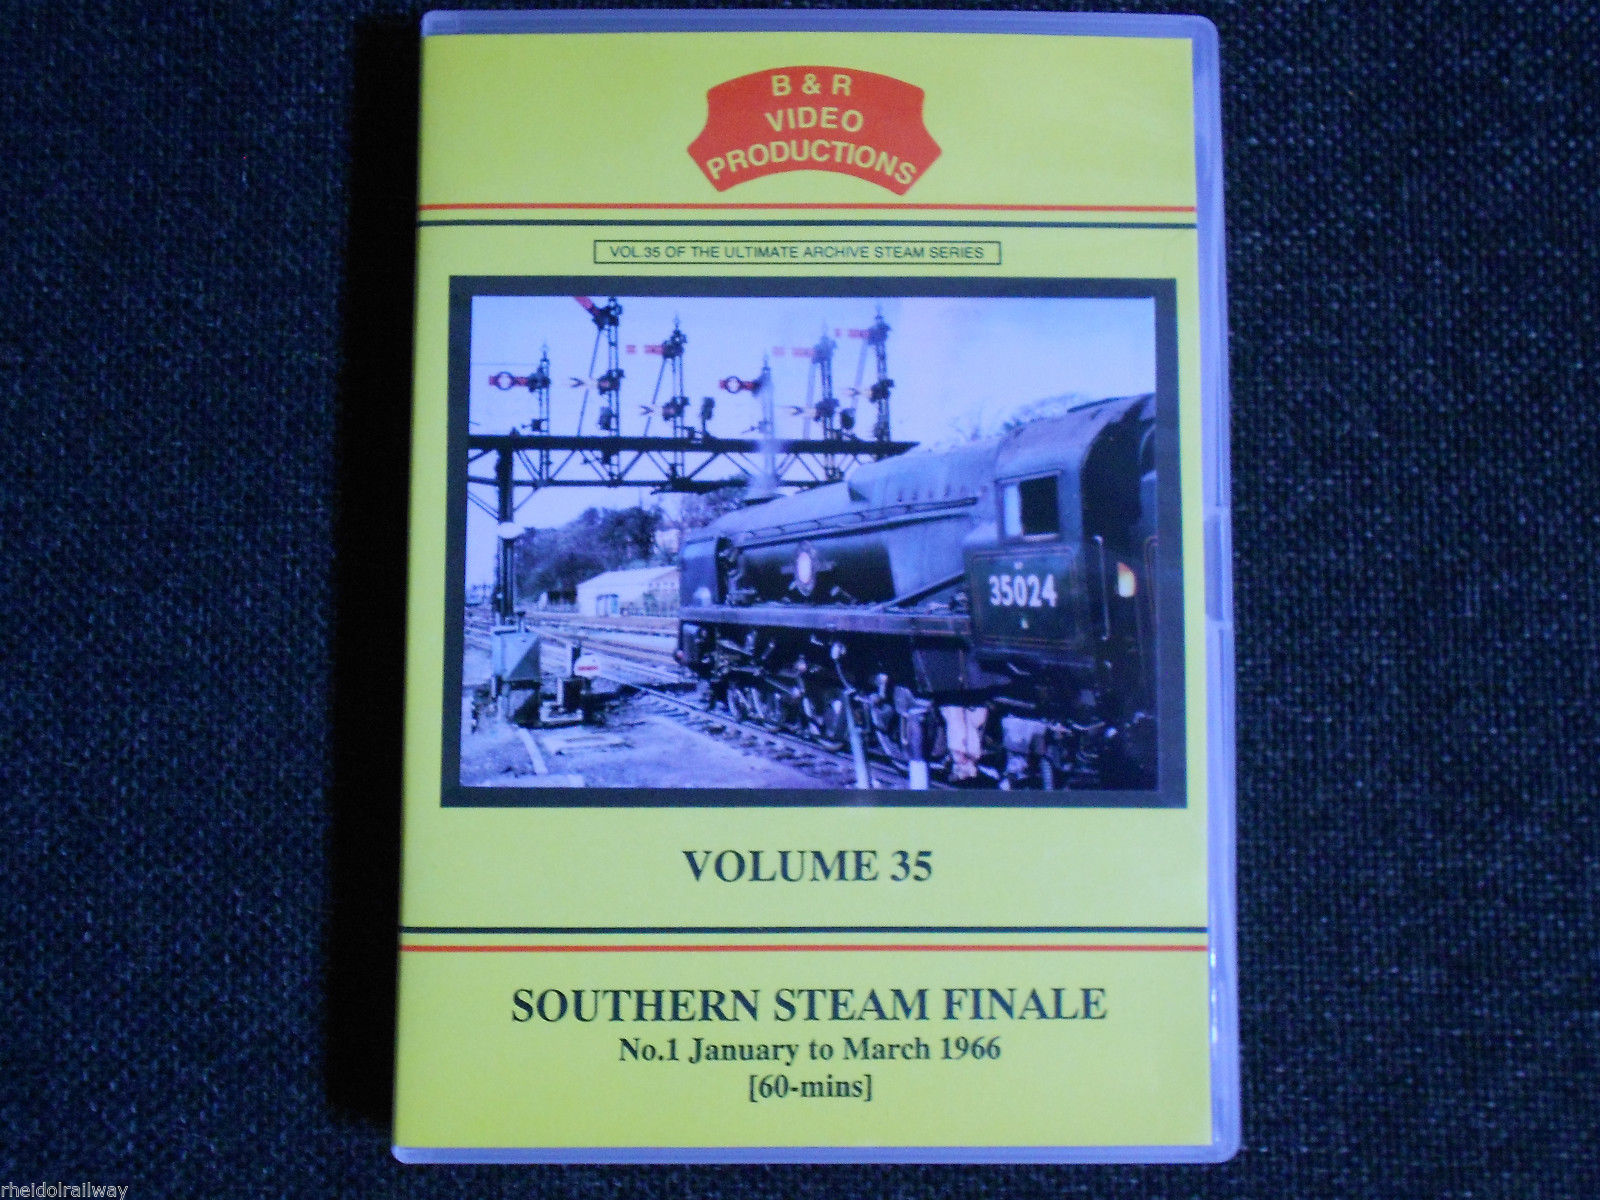 Waterloo, Weymouth, Southern Steam Finale Part 1, B & R Volume 35 DVD